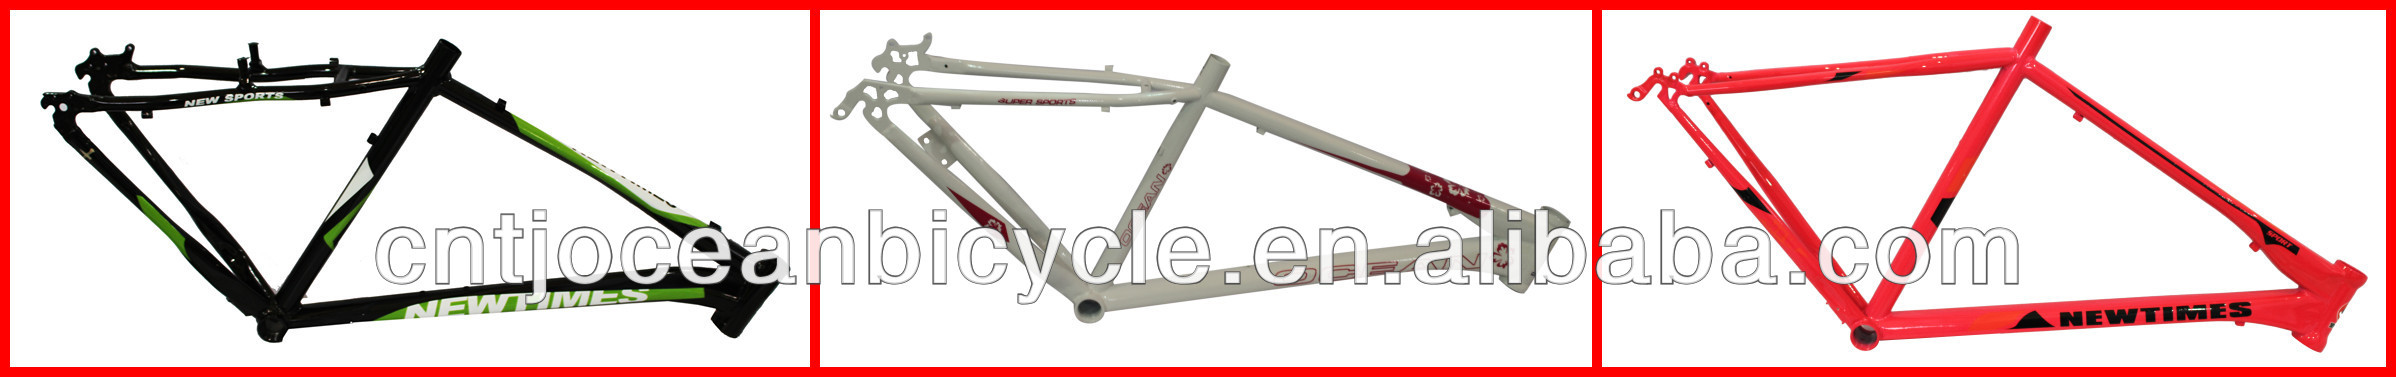 China Tianjin Bicycle Frame/MTB Frame/Steel Bicycle Frame/Raw Bicycle Frame